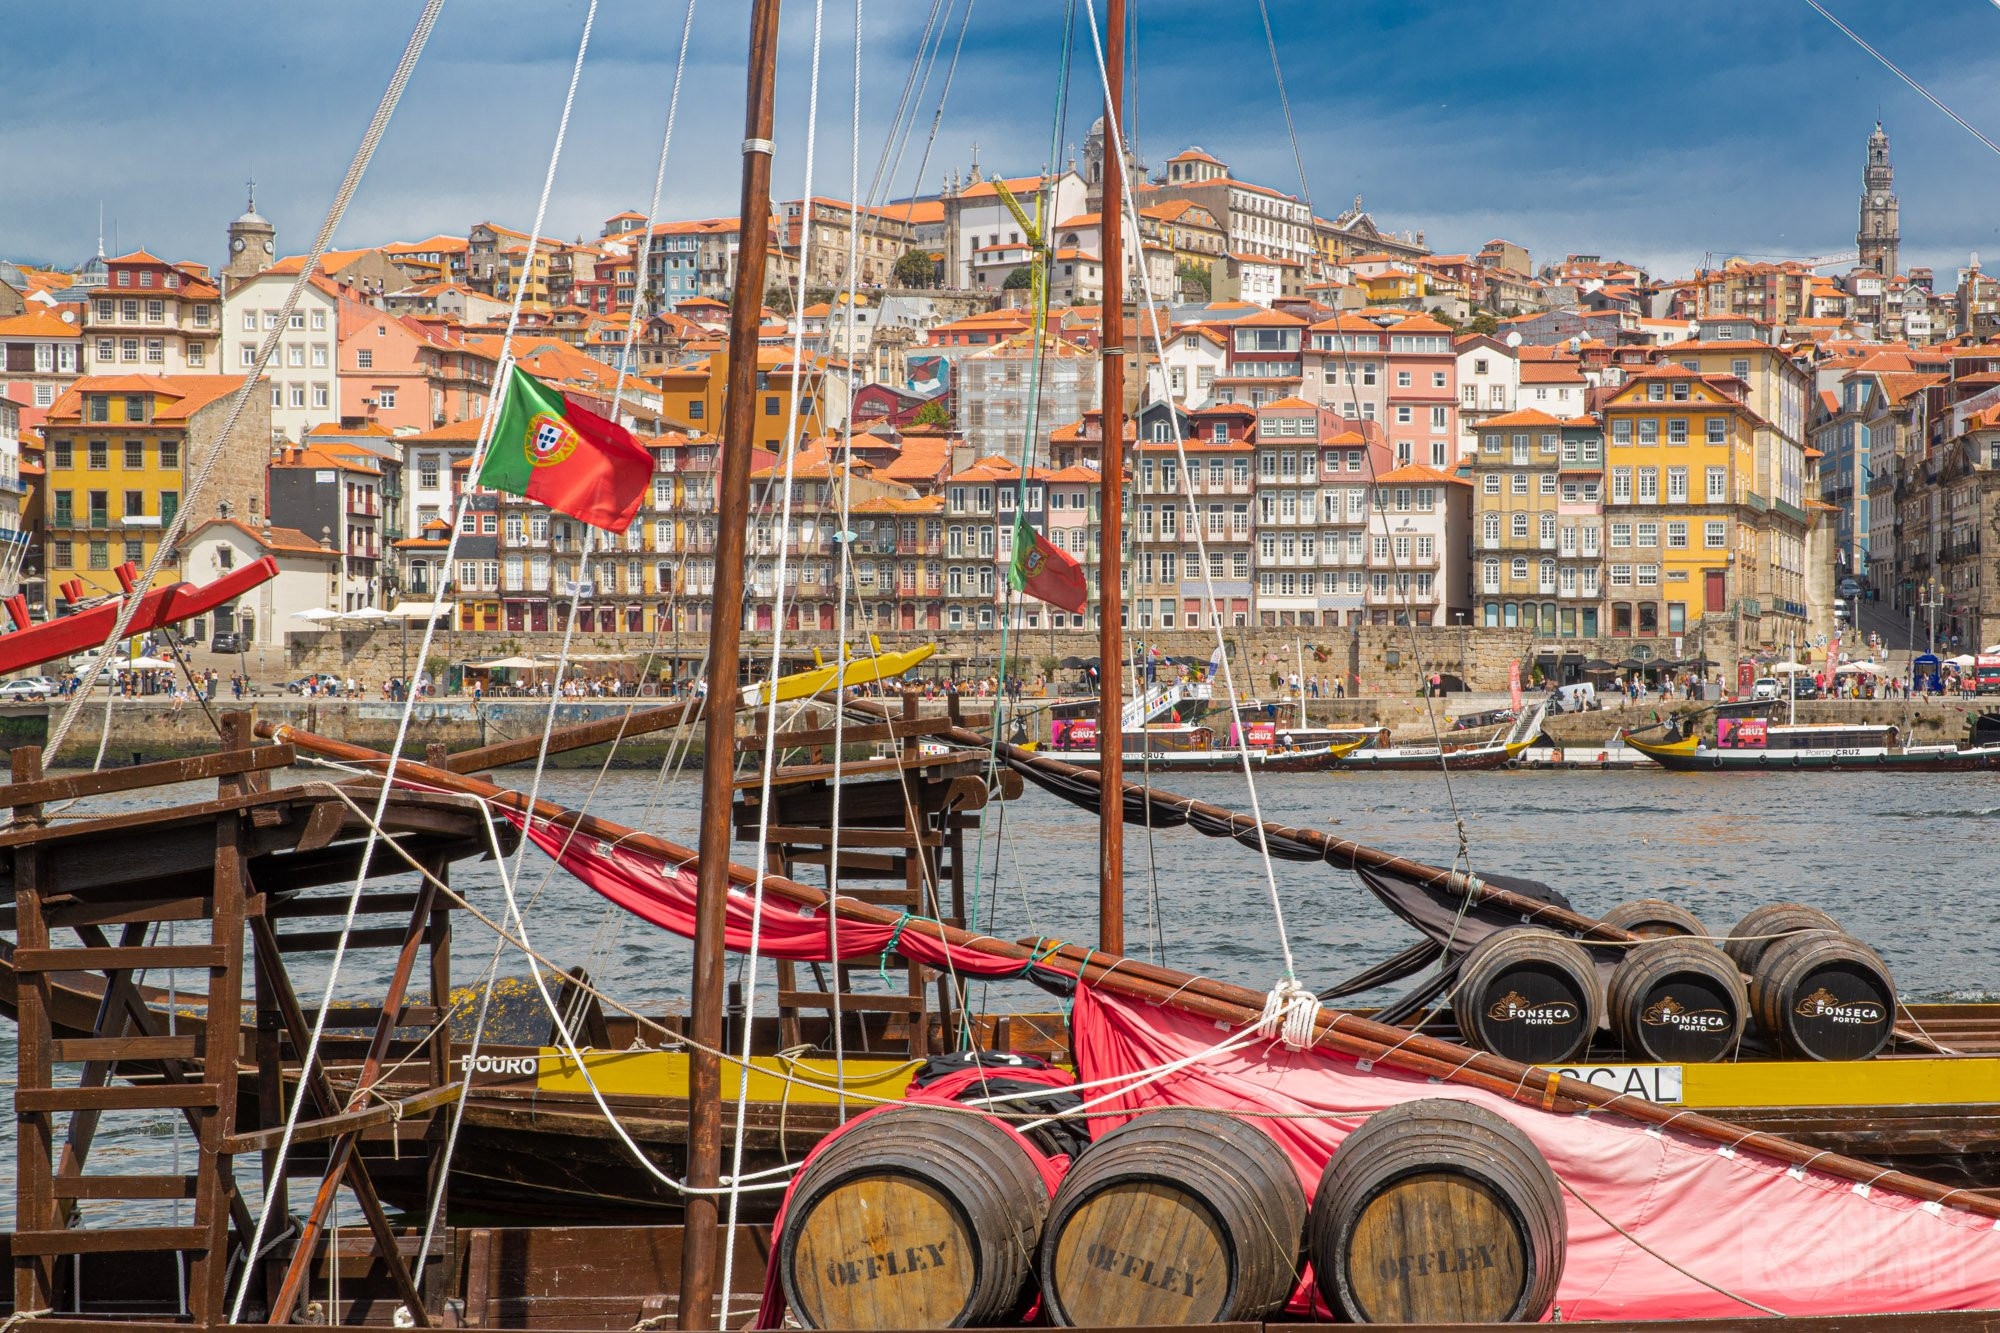 Old town and boats. Porto, Portugal